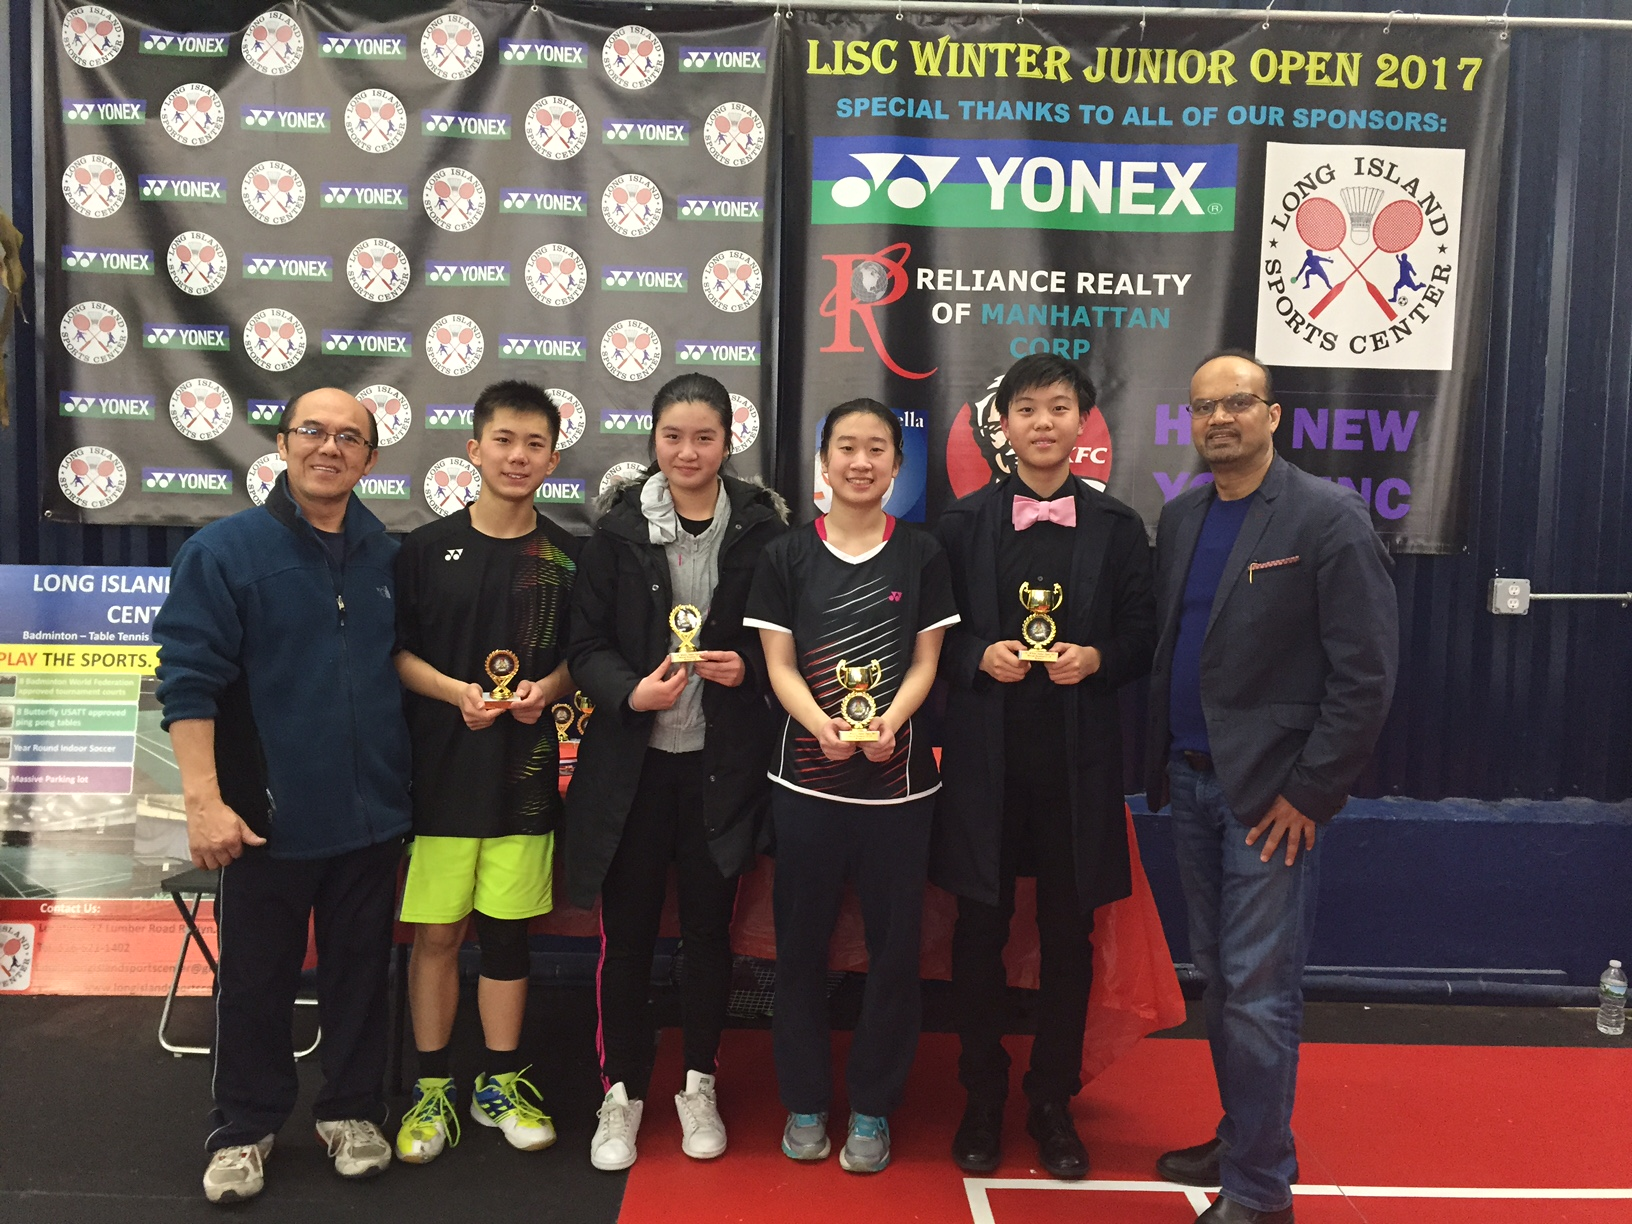 LISC Winter Jr Open 2017